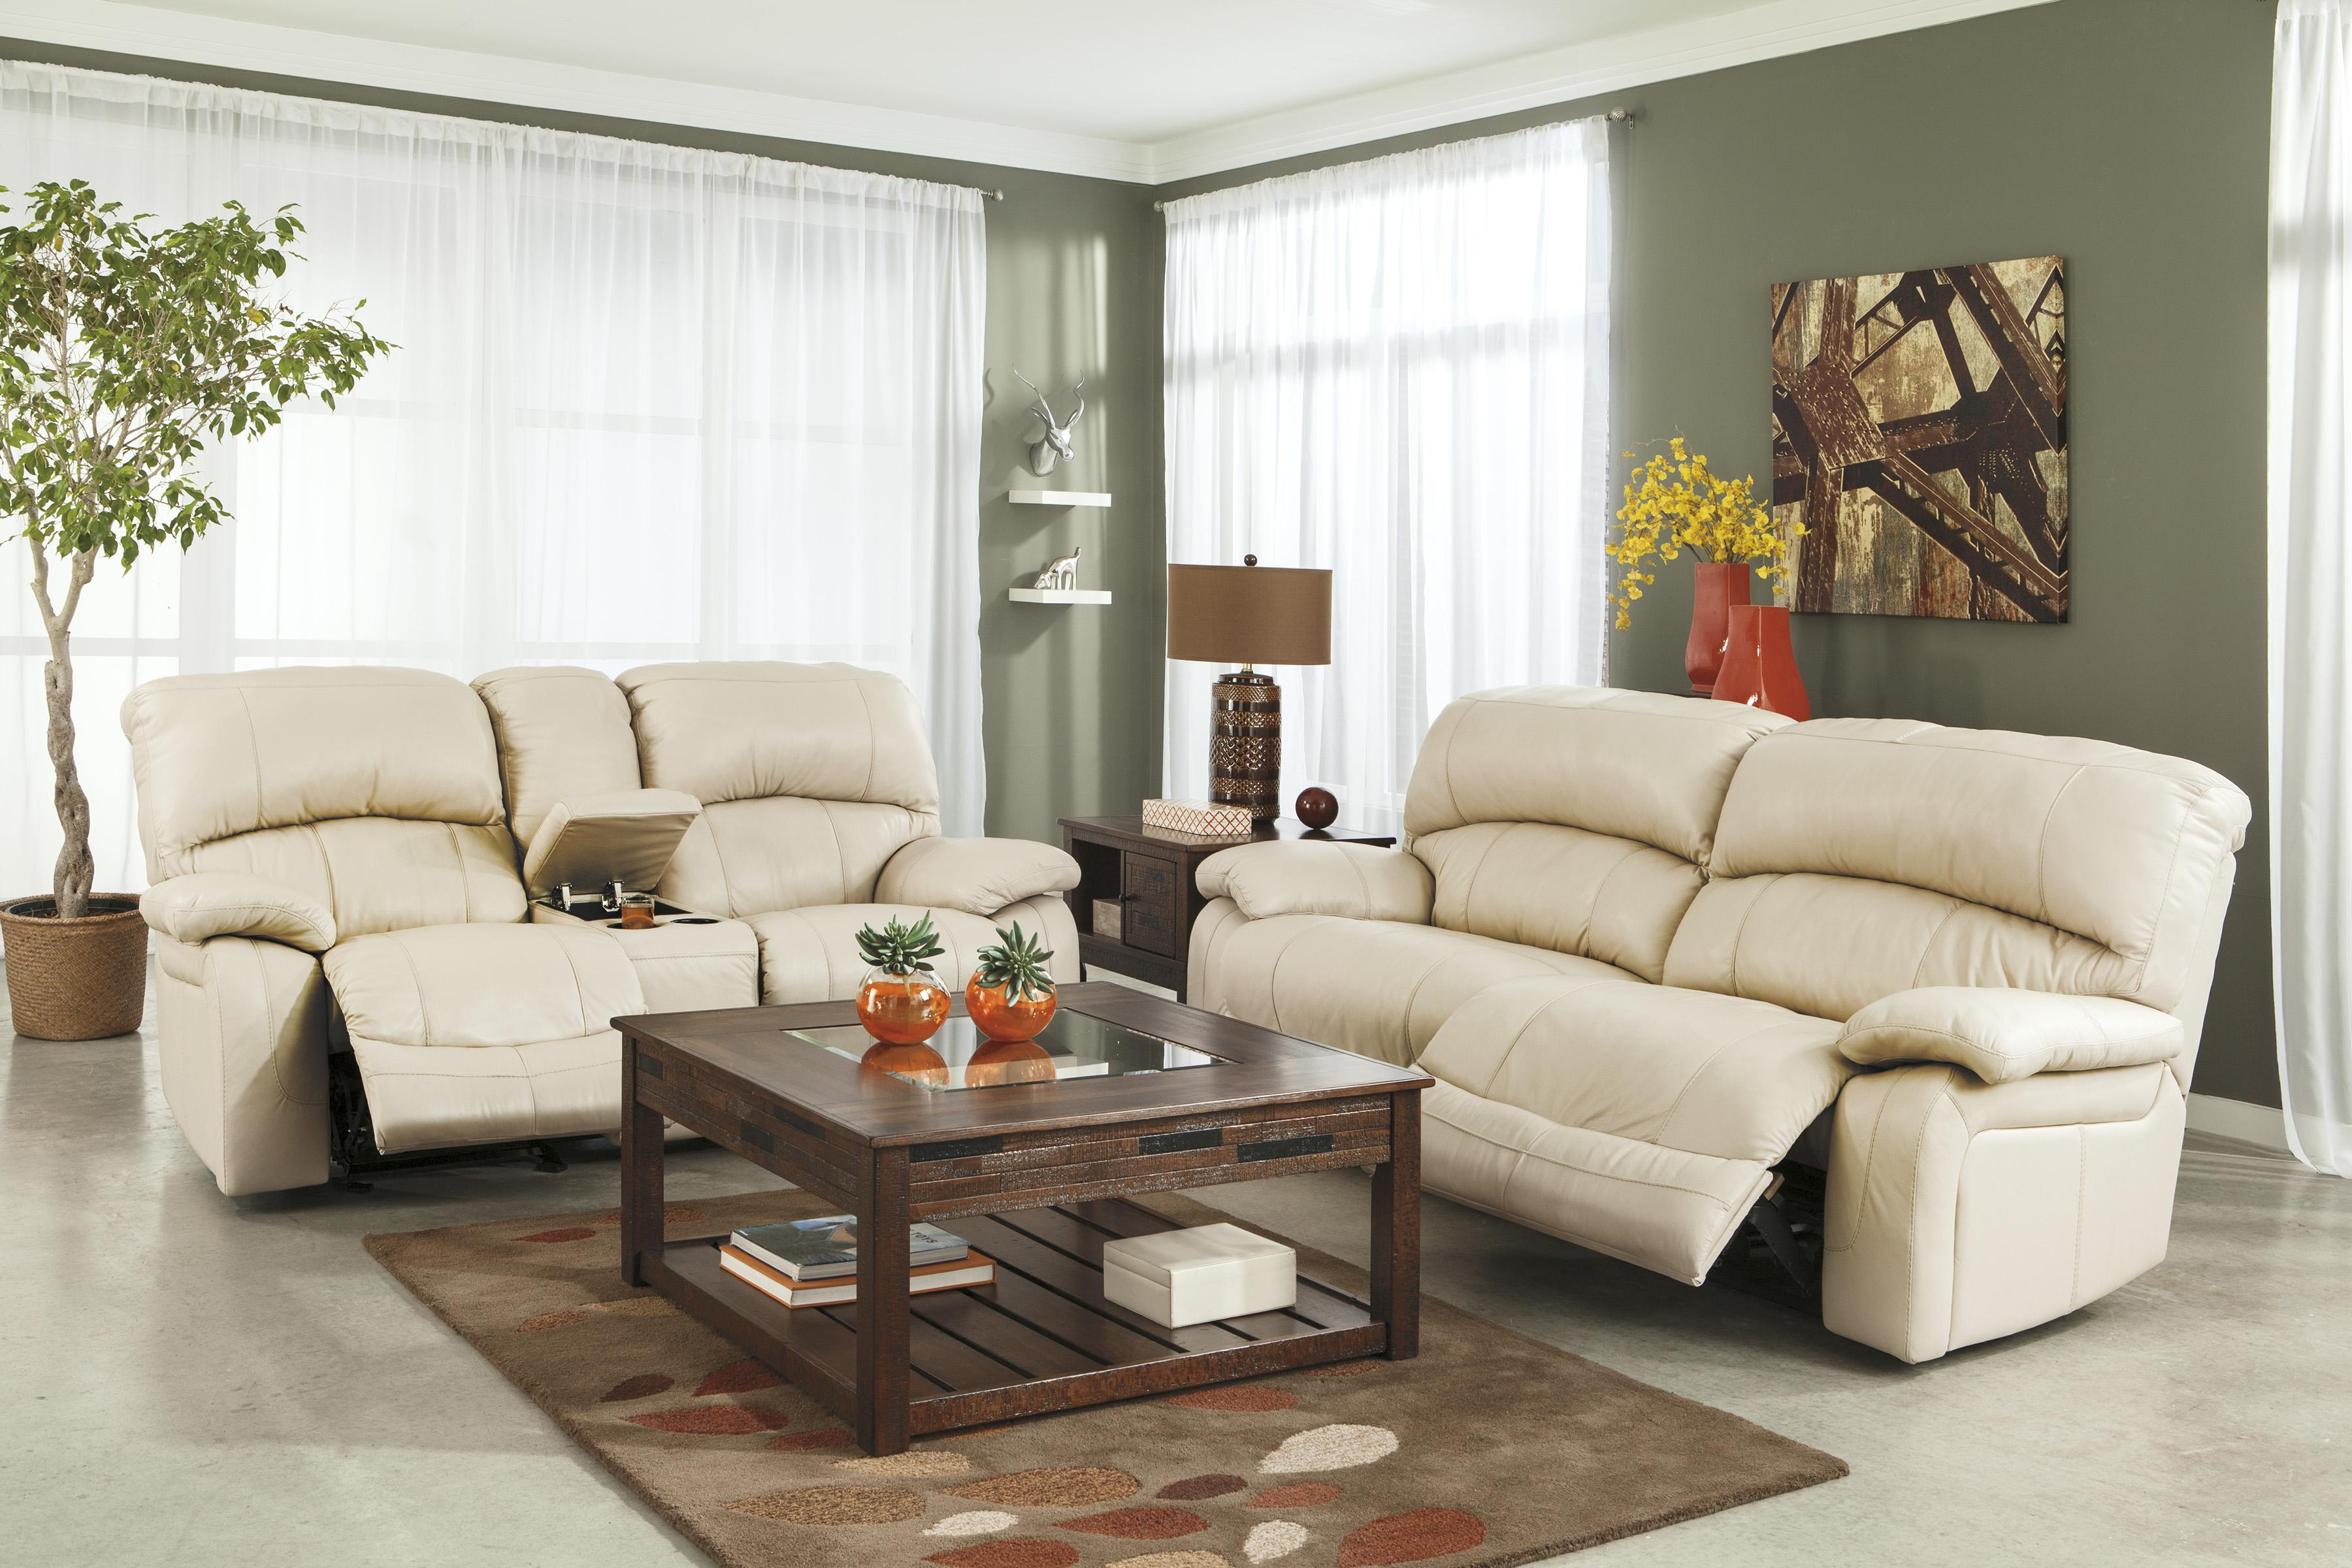 home living room living room set damacio 2pc cream reclining sofa